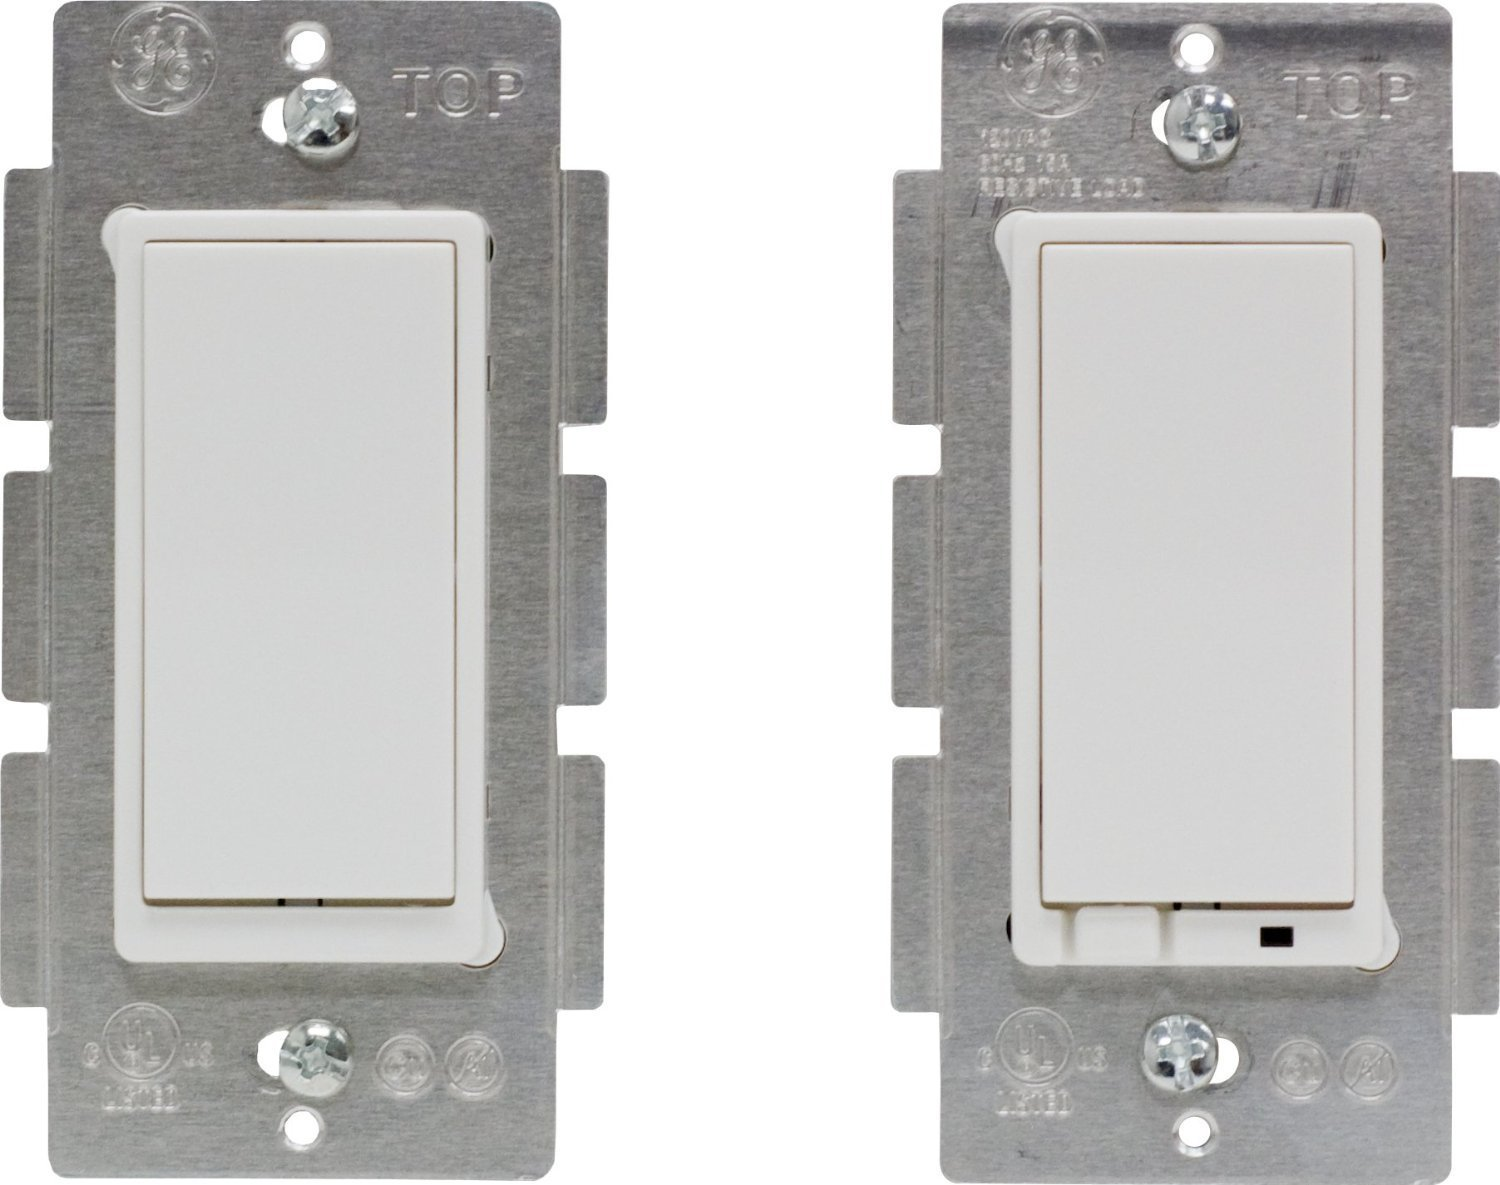 Latest Z Wave Plus Ge By Jasco Wireless Lighting Control Three Way Multiple Light Switch Wiring Diagram Commercial On Off Kit Works With Alexa Retail Packaging Wall Switches